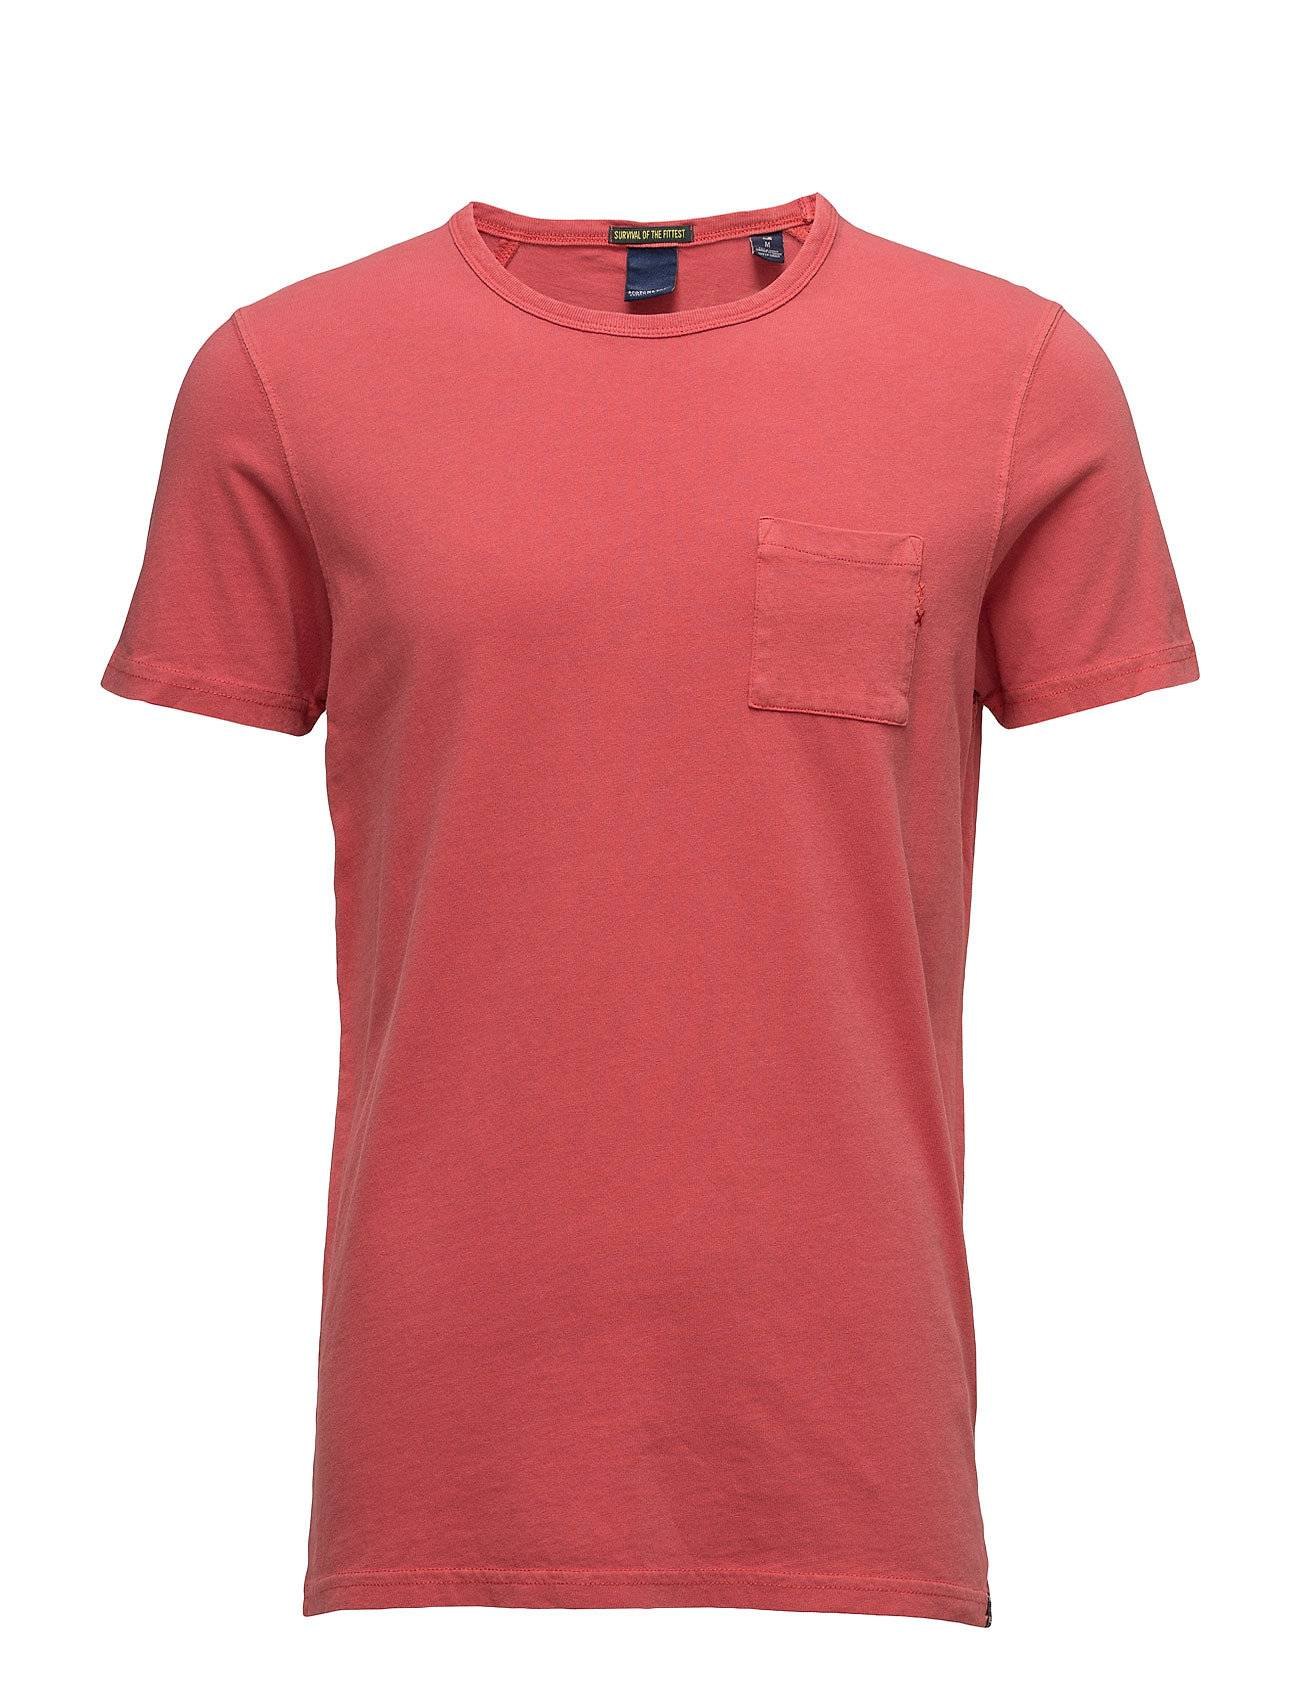 Scotch & Soda Ams Blauw Regular Fit Tee In Autumn Colours With Wash Effect